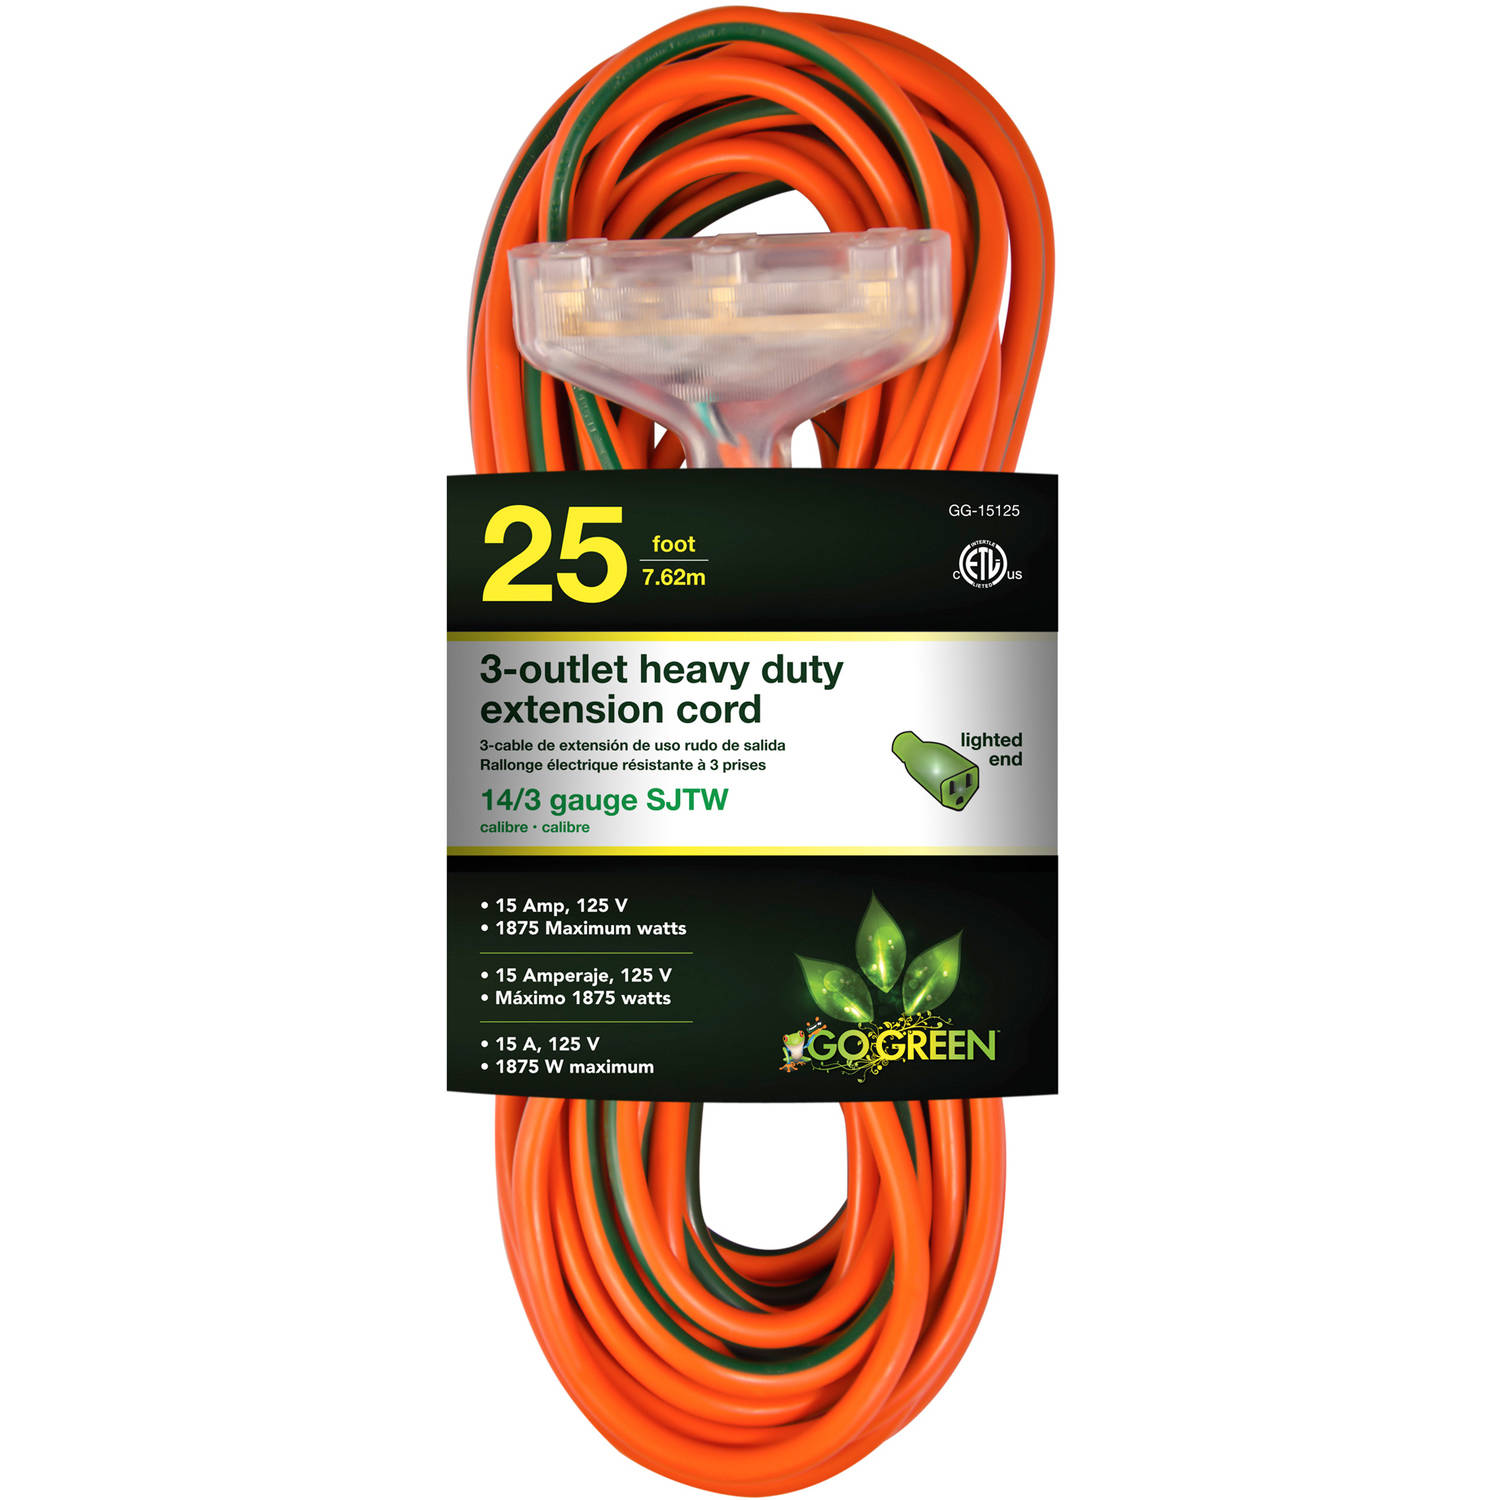 GoGreen Power 14/3 25' 15125 3-Outlet Heavy Duty Extension Cord, Lighted End